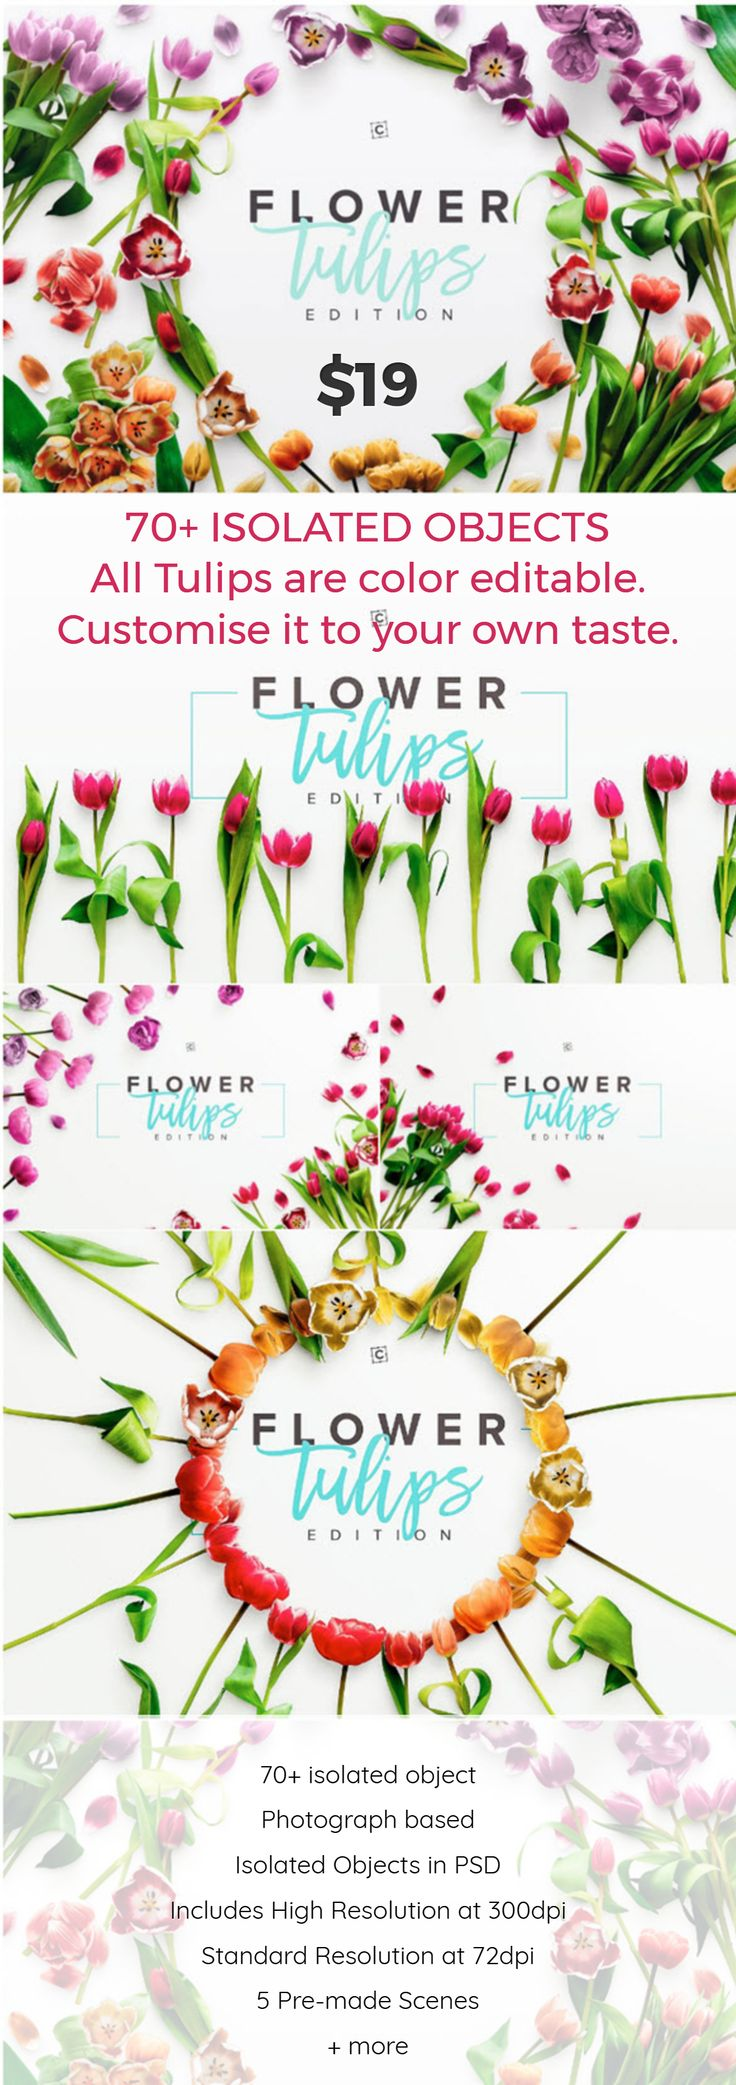 70+ ISOLATED OBJECTS All Tulips are color editable. Customise it to your own taste. / 70+ isolated object Photograph based Isolated Objects in PSD Includes High Resolution at 300dpi Standard Resolution at 72dpi 5 Pre-made Scenes + more / $19